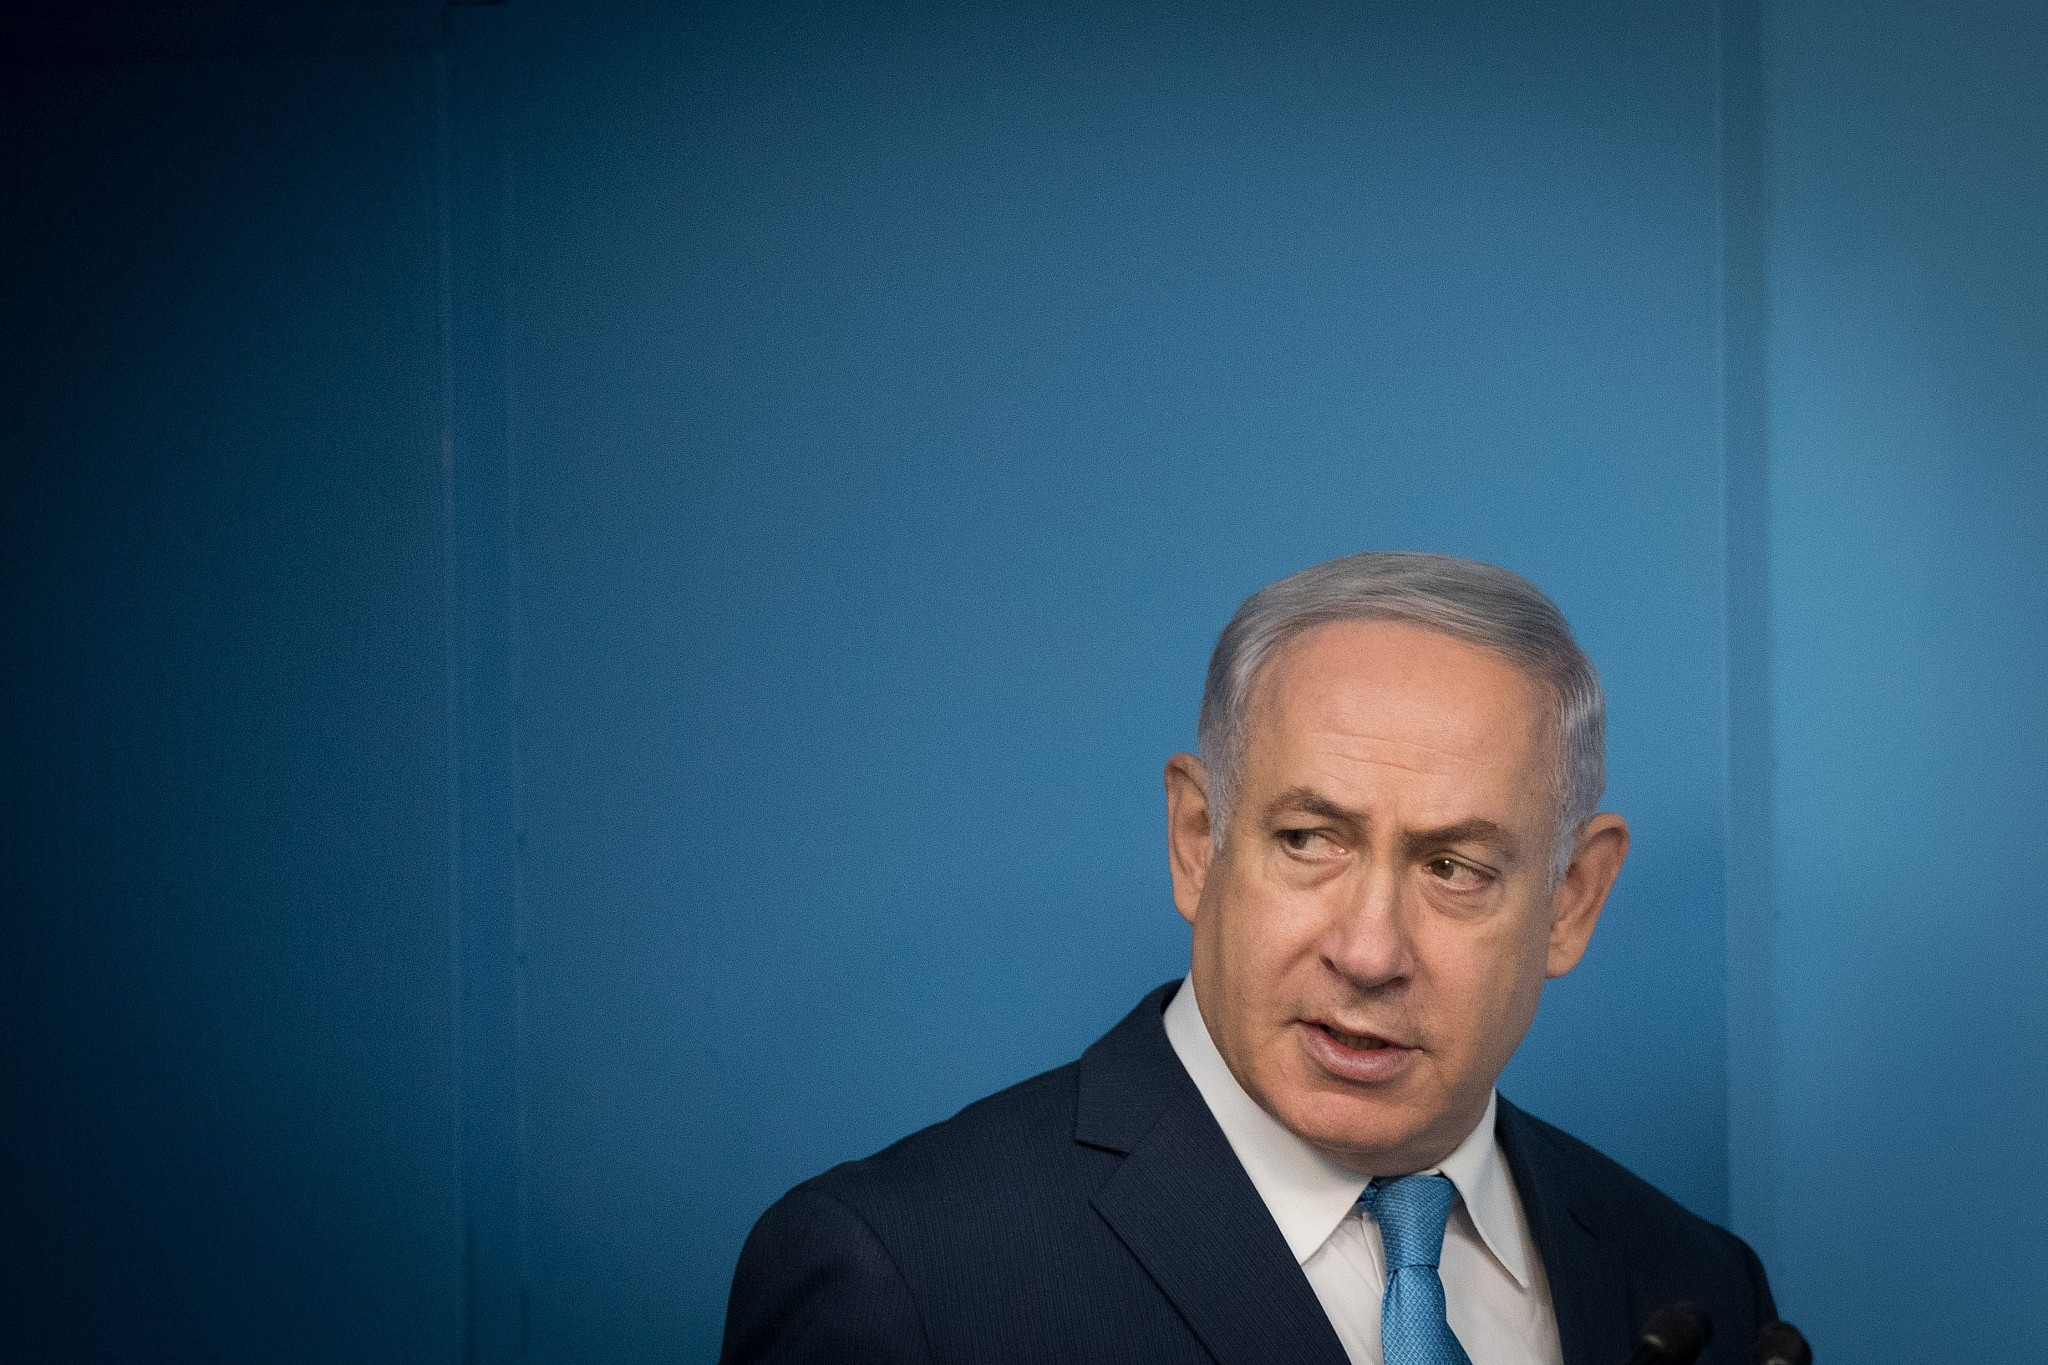 Netanyahu aide agrees to implicate PM over corruption claims